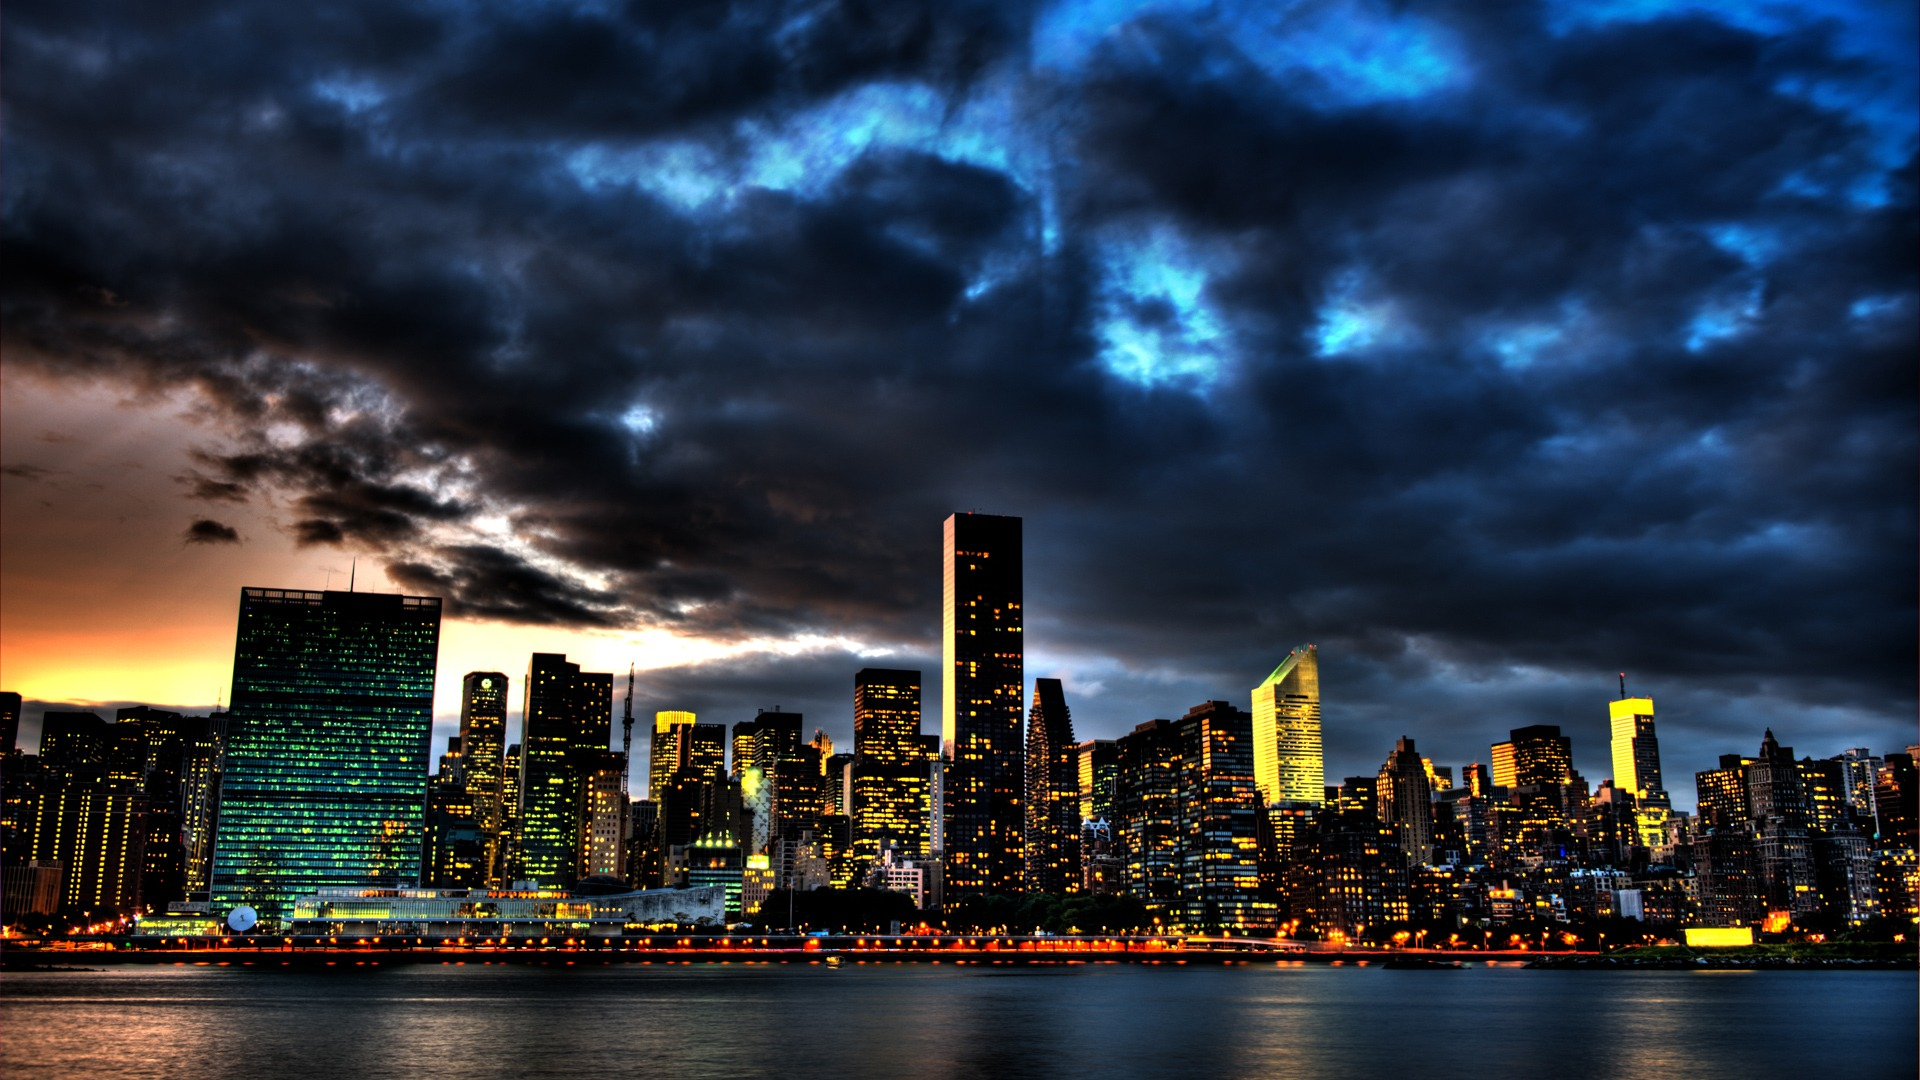 New York City Skyline 1080p Wallpaper City HD Wallpapers Wide Screen 1920x1080